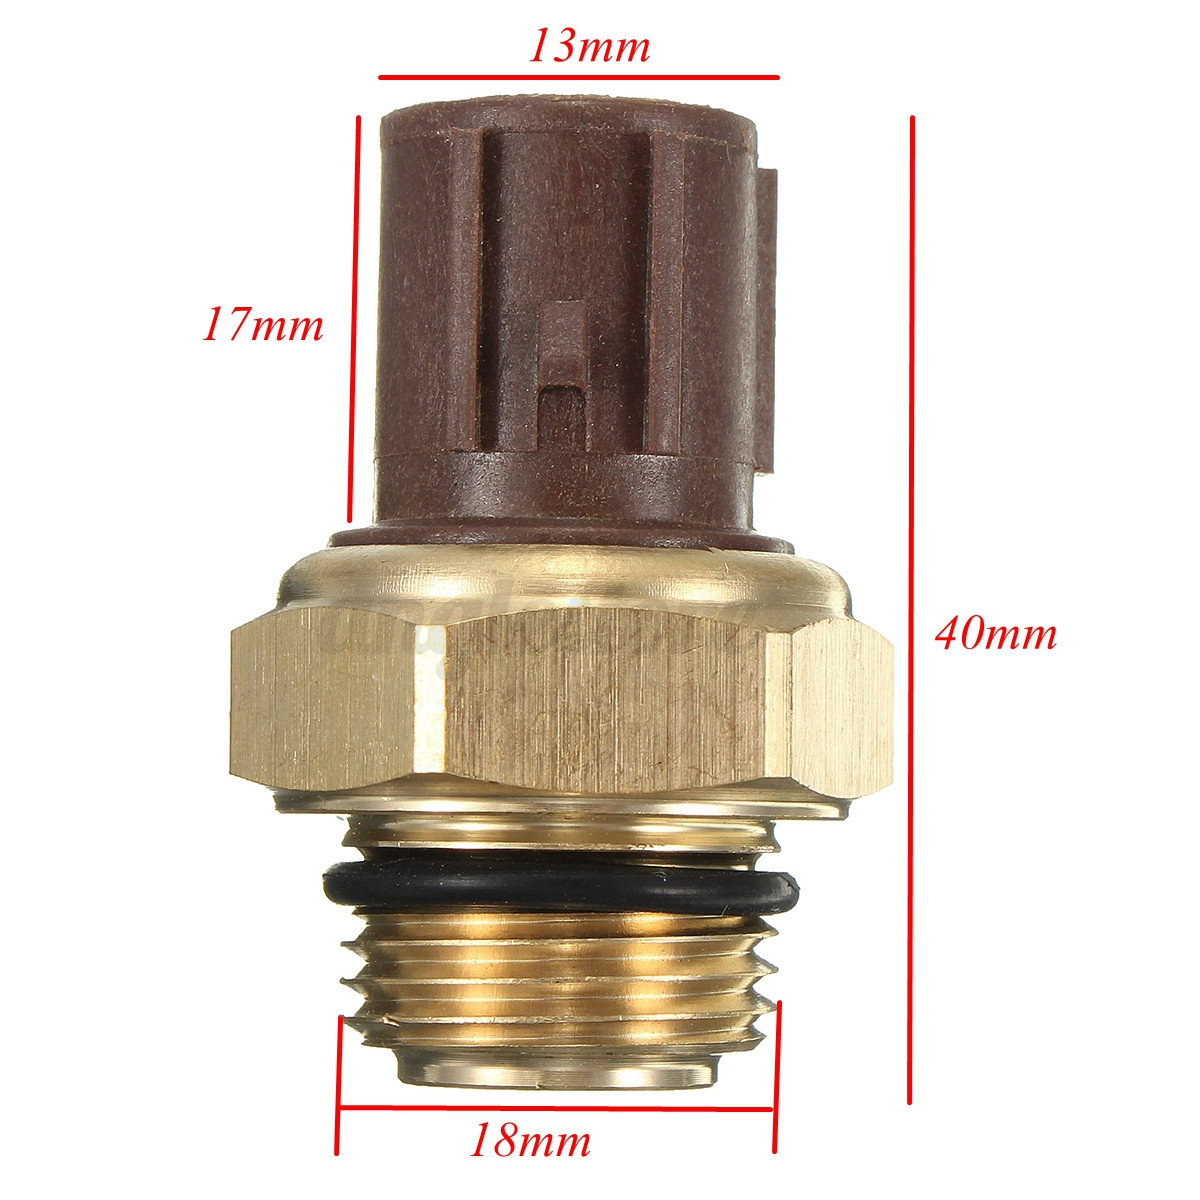 Raqyckgtybfyel A likewise Hqdefault likewise Large furthermore D De Bf E Aeb Befea also R. on 2005 honda accord coolant temperature sensor